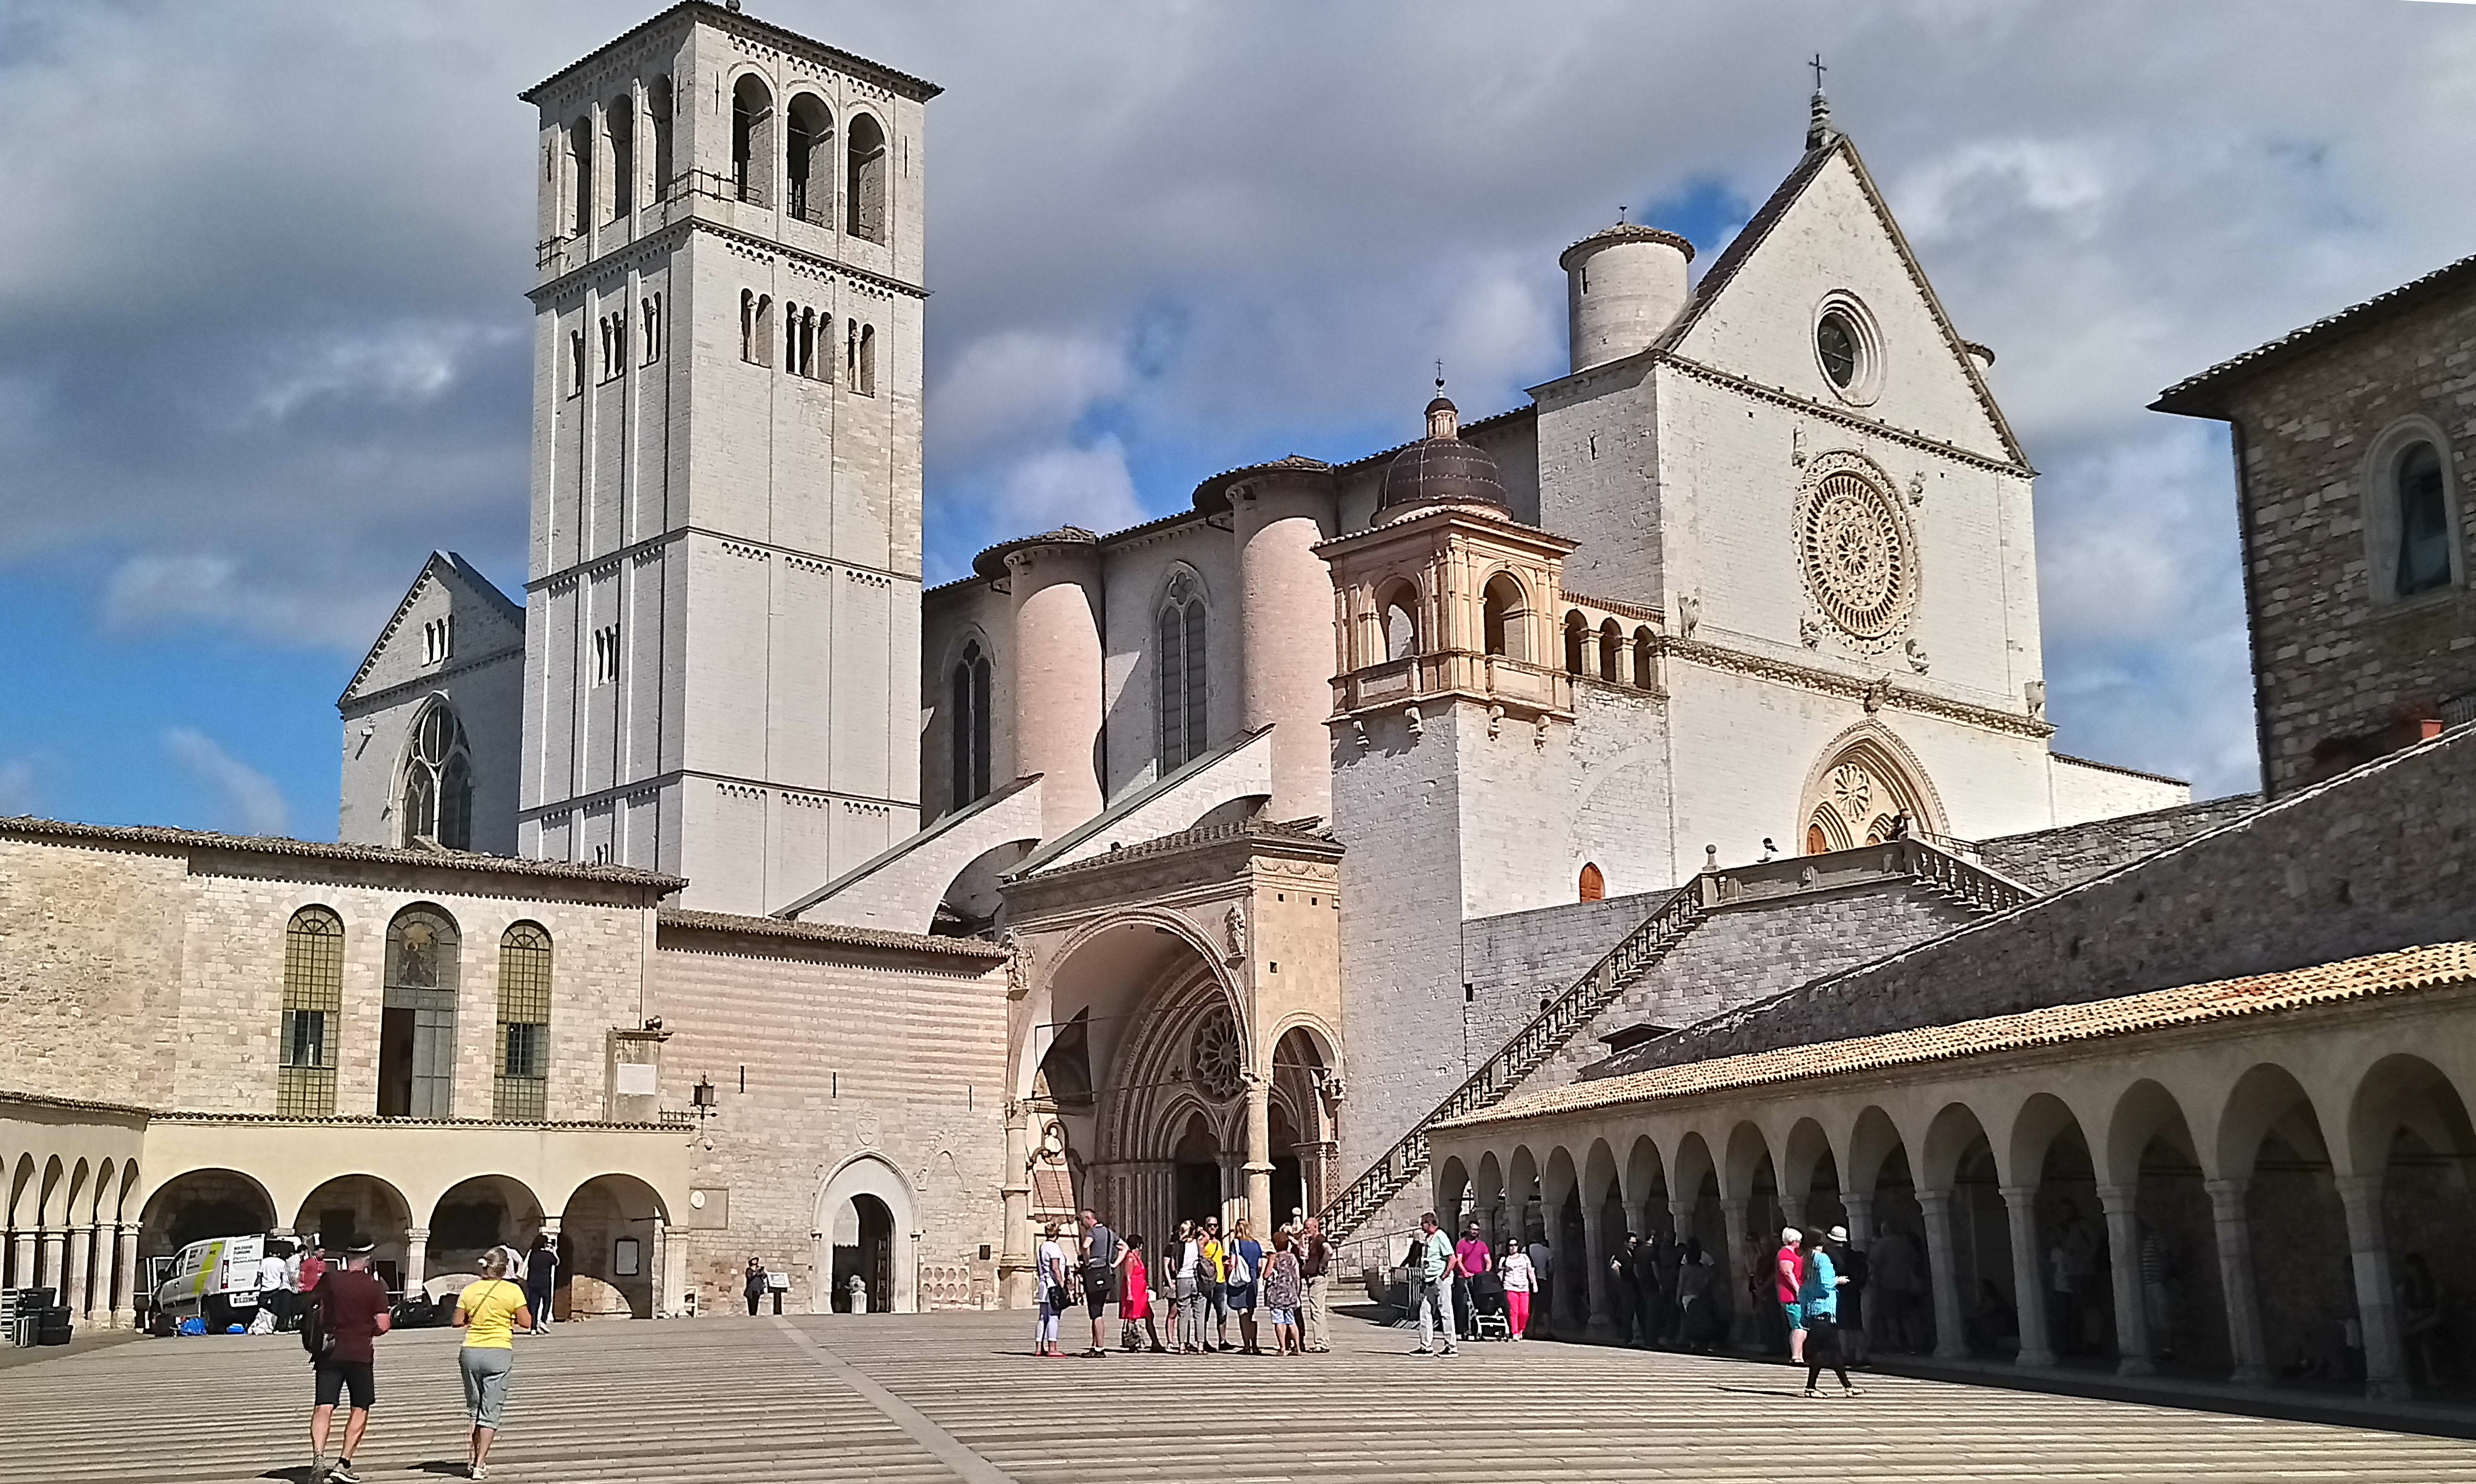 Basilica di San Francesco (Photo: © Henri Craemer)